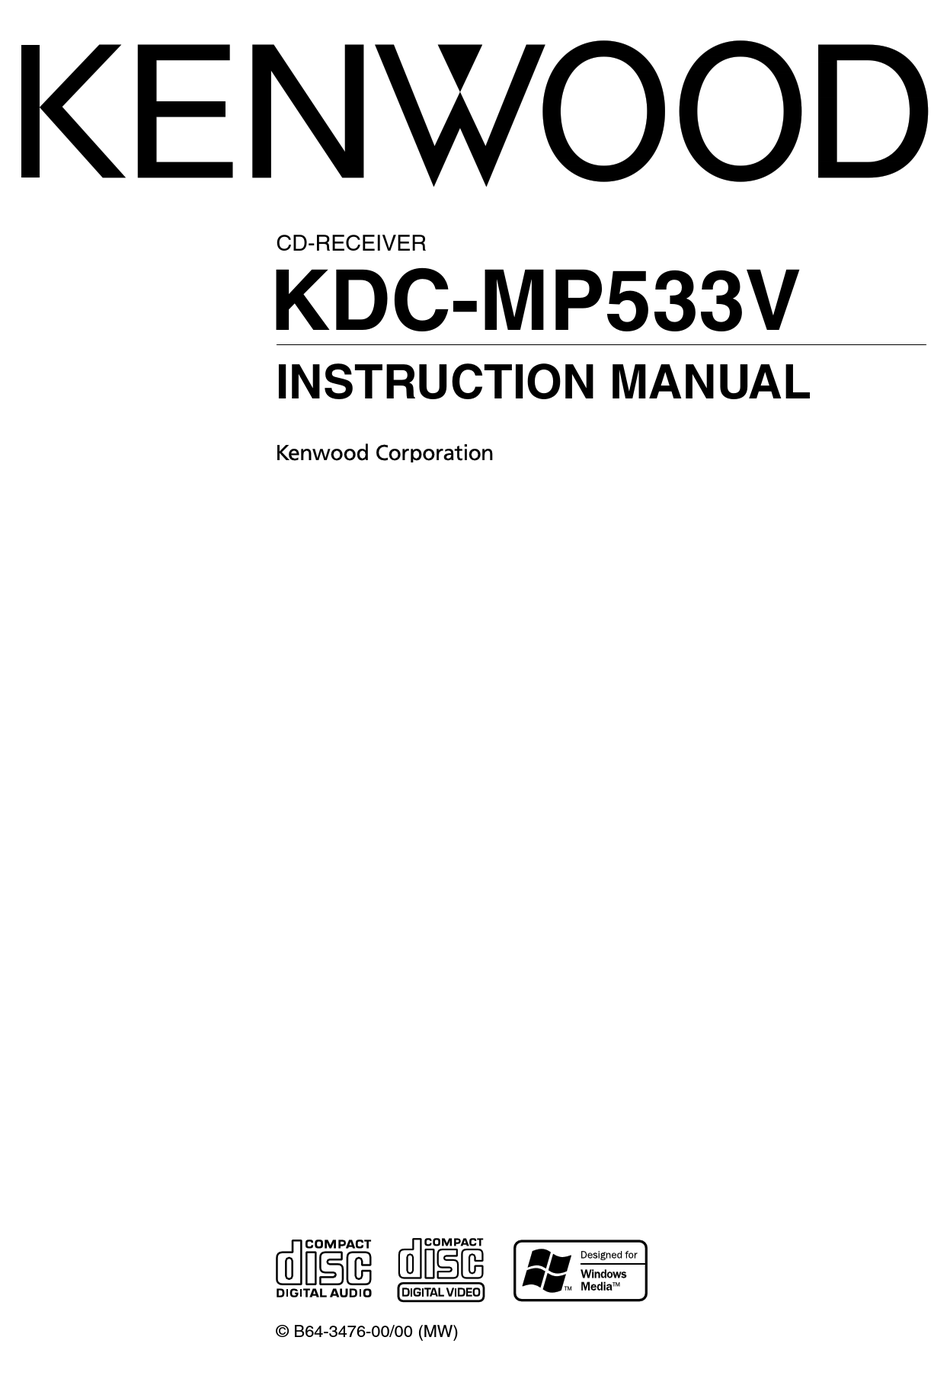 KENWOOD KDC-MP533V INSTRUCTION MANUAL Pdf Download